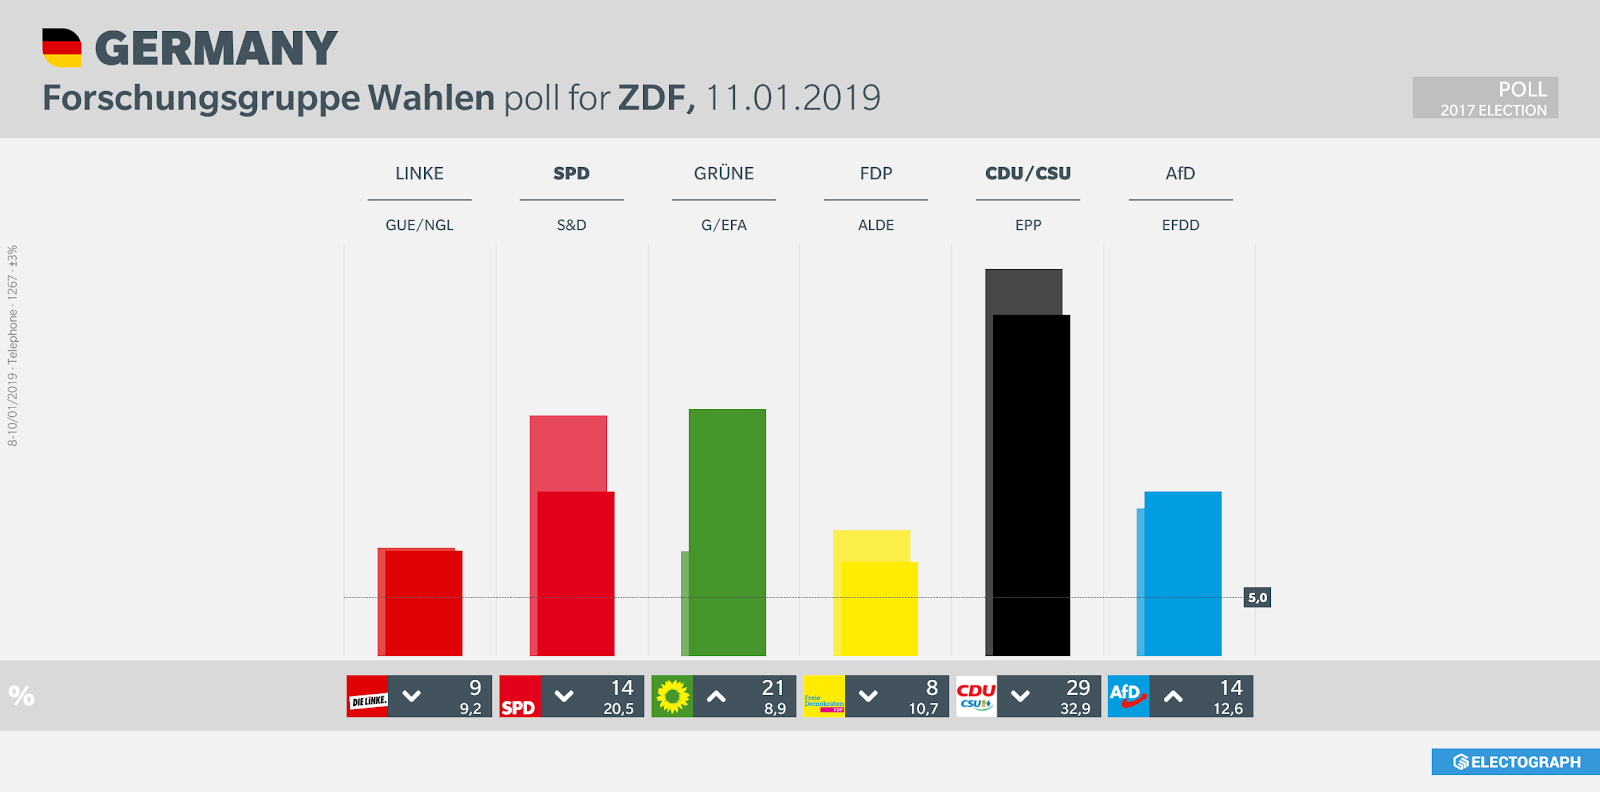 GERMANY: Forschungsgruppe Wahlen poll chart for ZDF, 11 January 2019